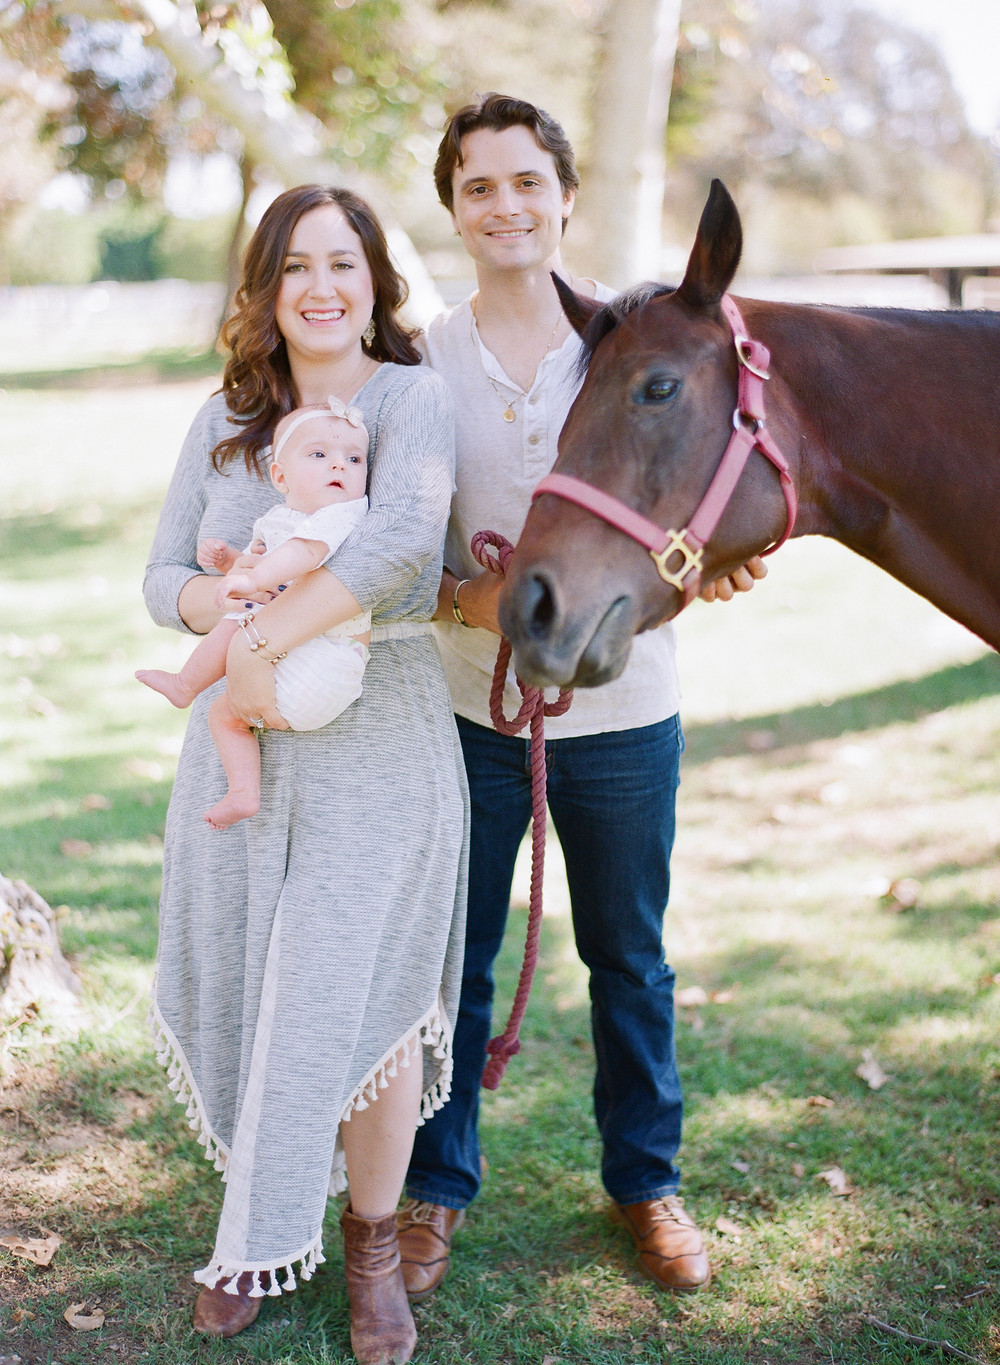 Family photo at Calamigos Equestrian in Burbank with horse